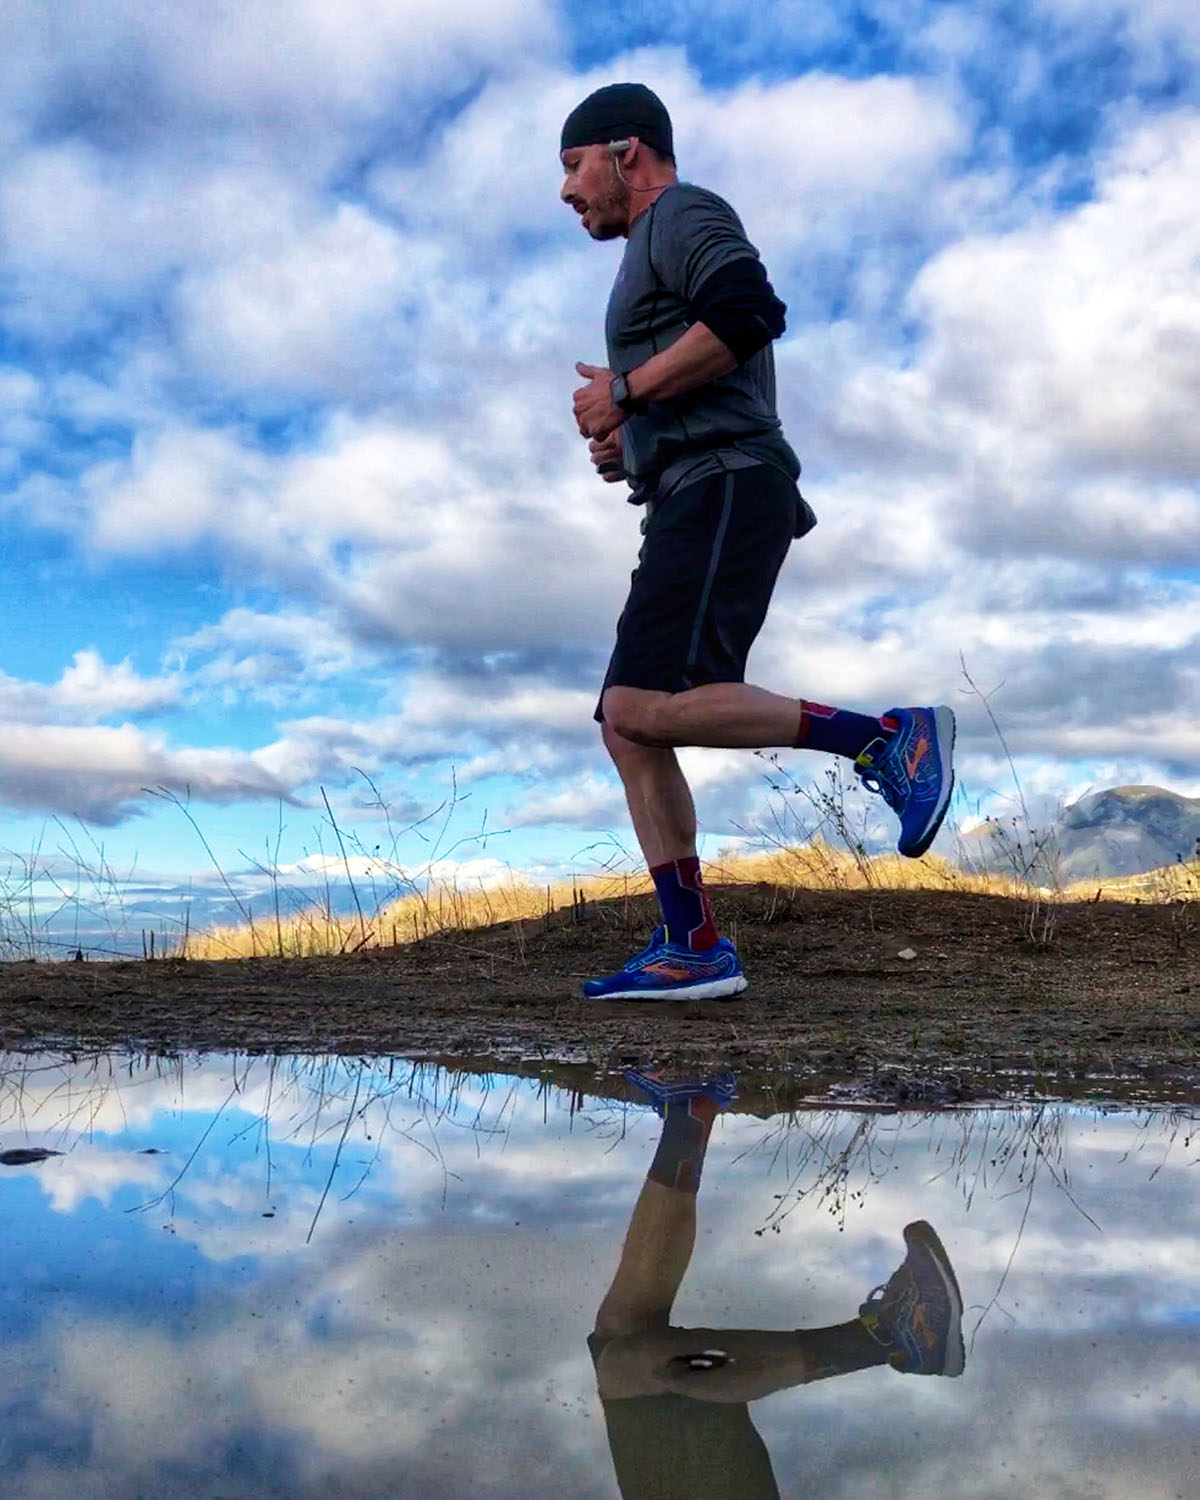 photo of man running, clouds in sky and water on the ground